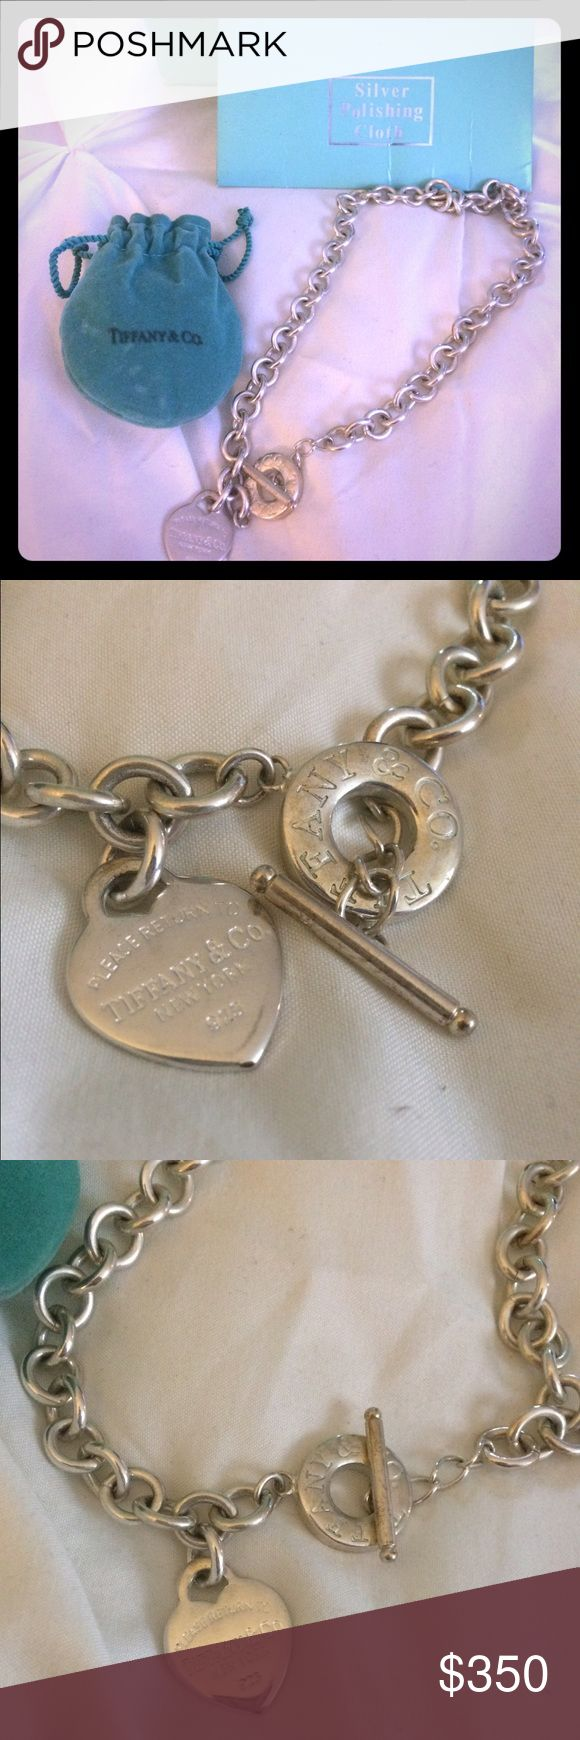 17 Best Ideas About Tiffany Necklace On Pinterest